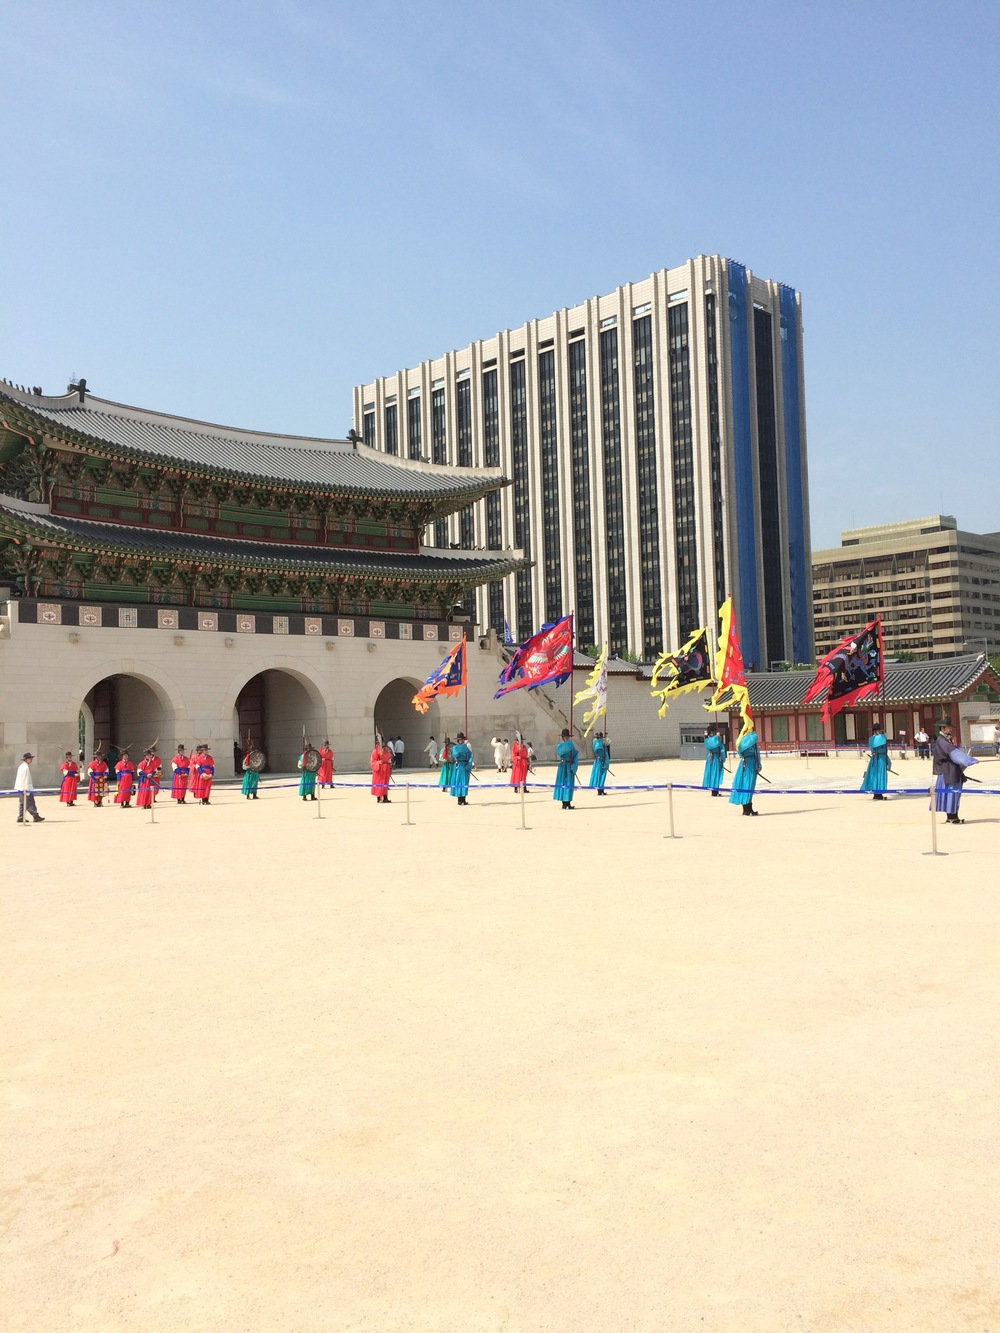 Ceremonial changing of the guard at South Korea's Gyeongbokgung Palace